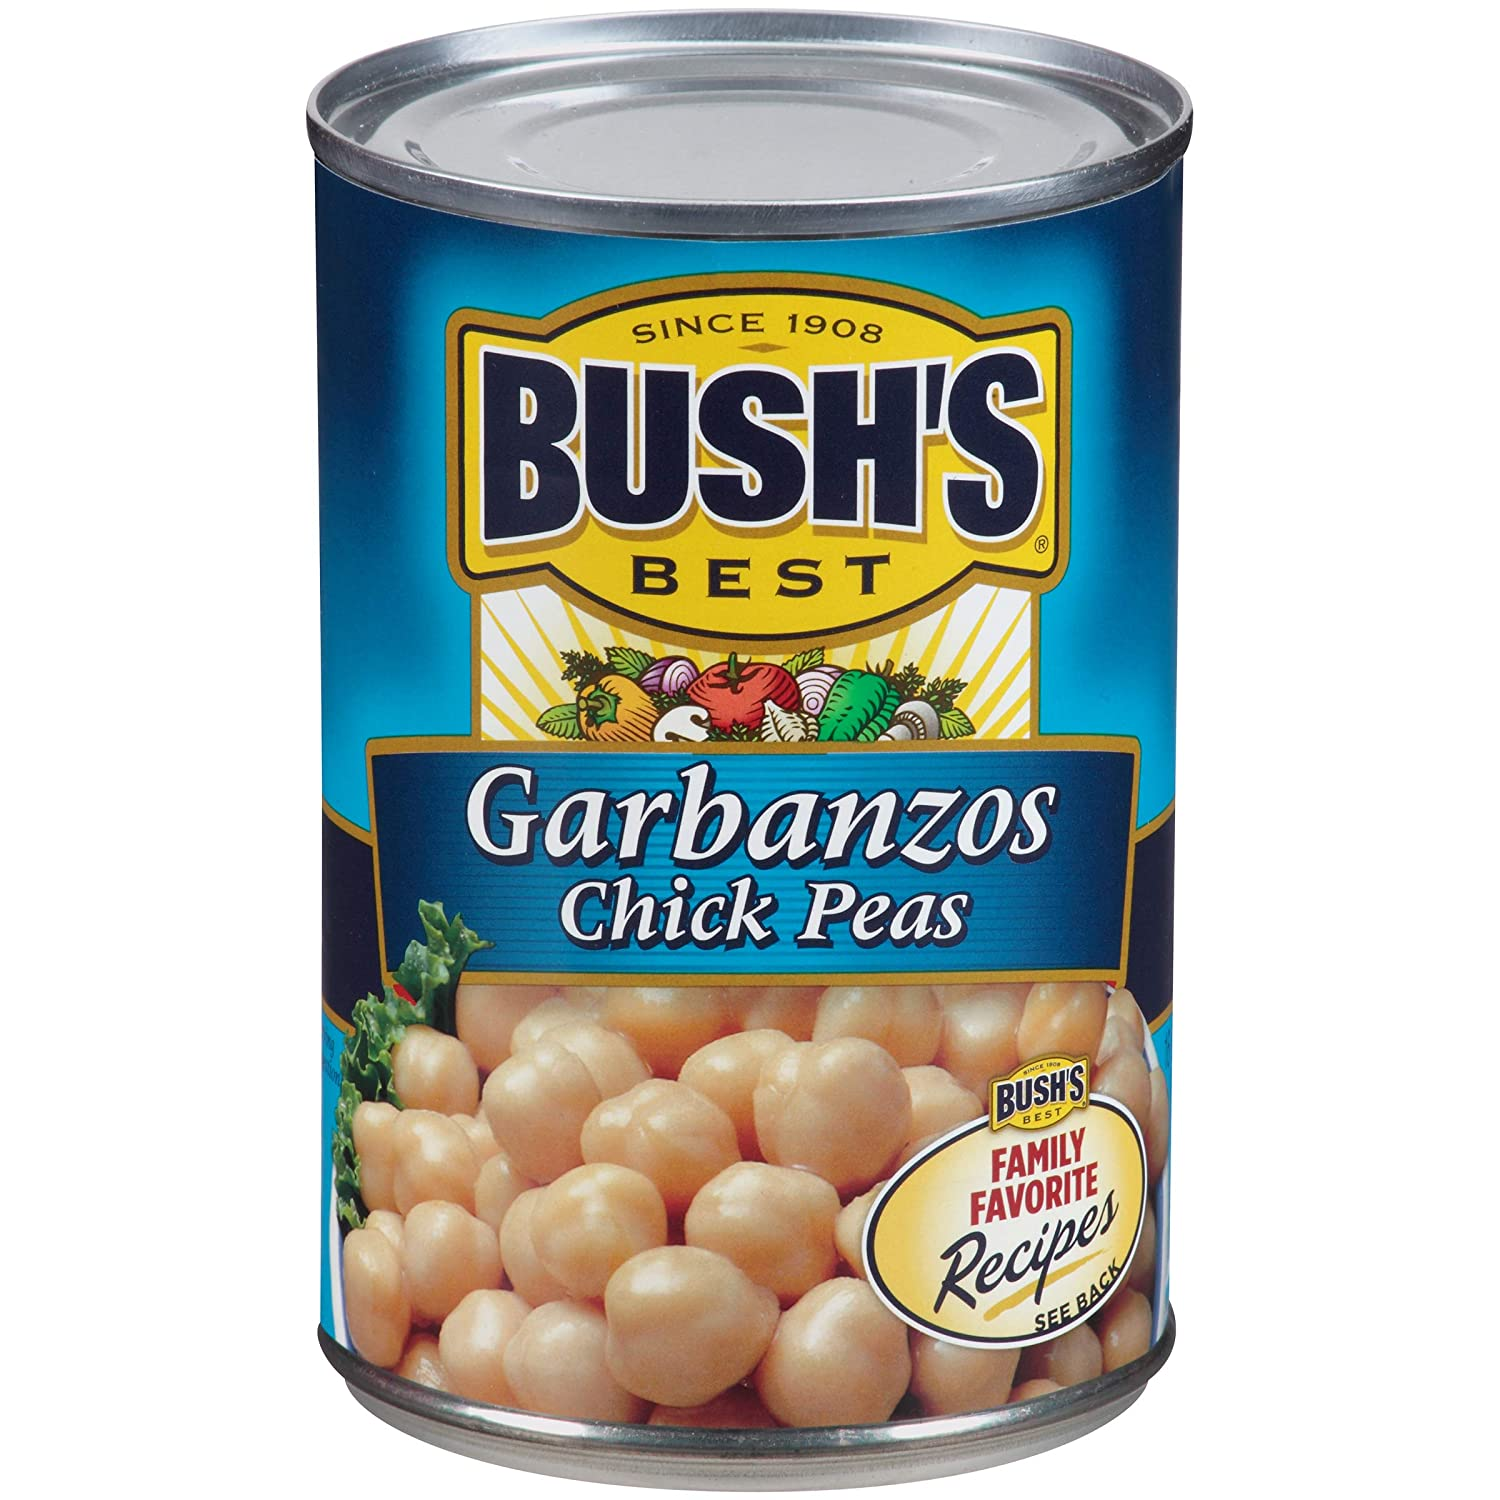 Amazon.com : Bushs Best Reduced Sodium Garbanzo Beans, 16 oz (12 cans) : Grocery & Gourmet Food